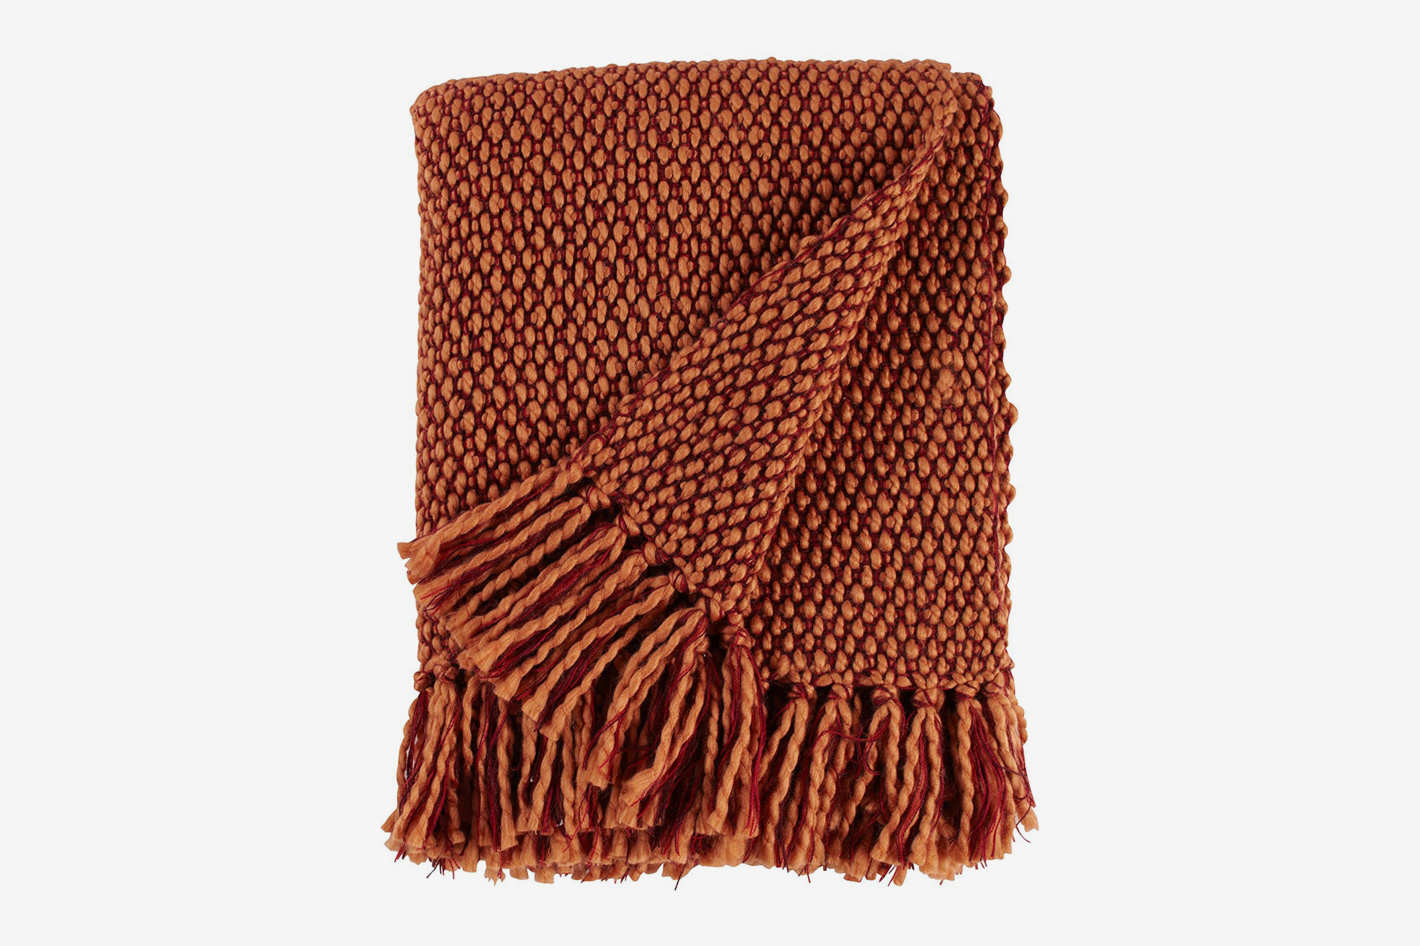 "Stone & Beam Modern Woven Farmhouse Throw, 50"" x 60"", Orange/Red"